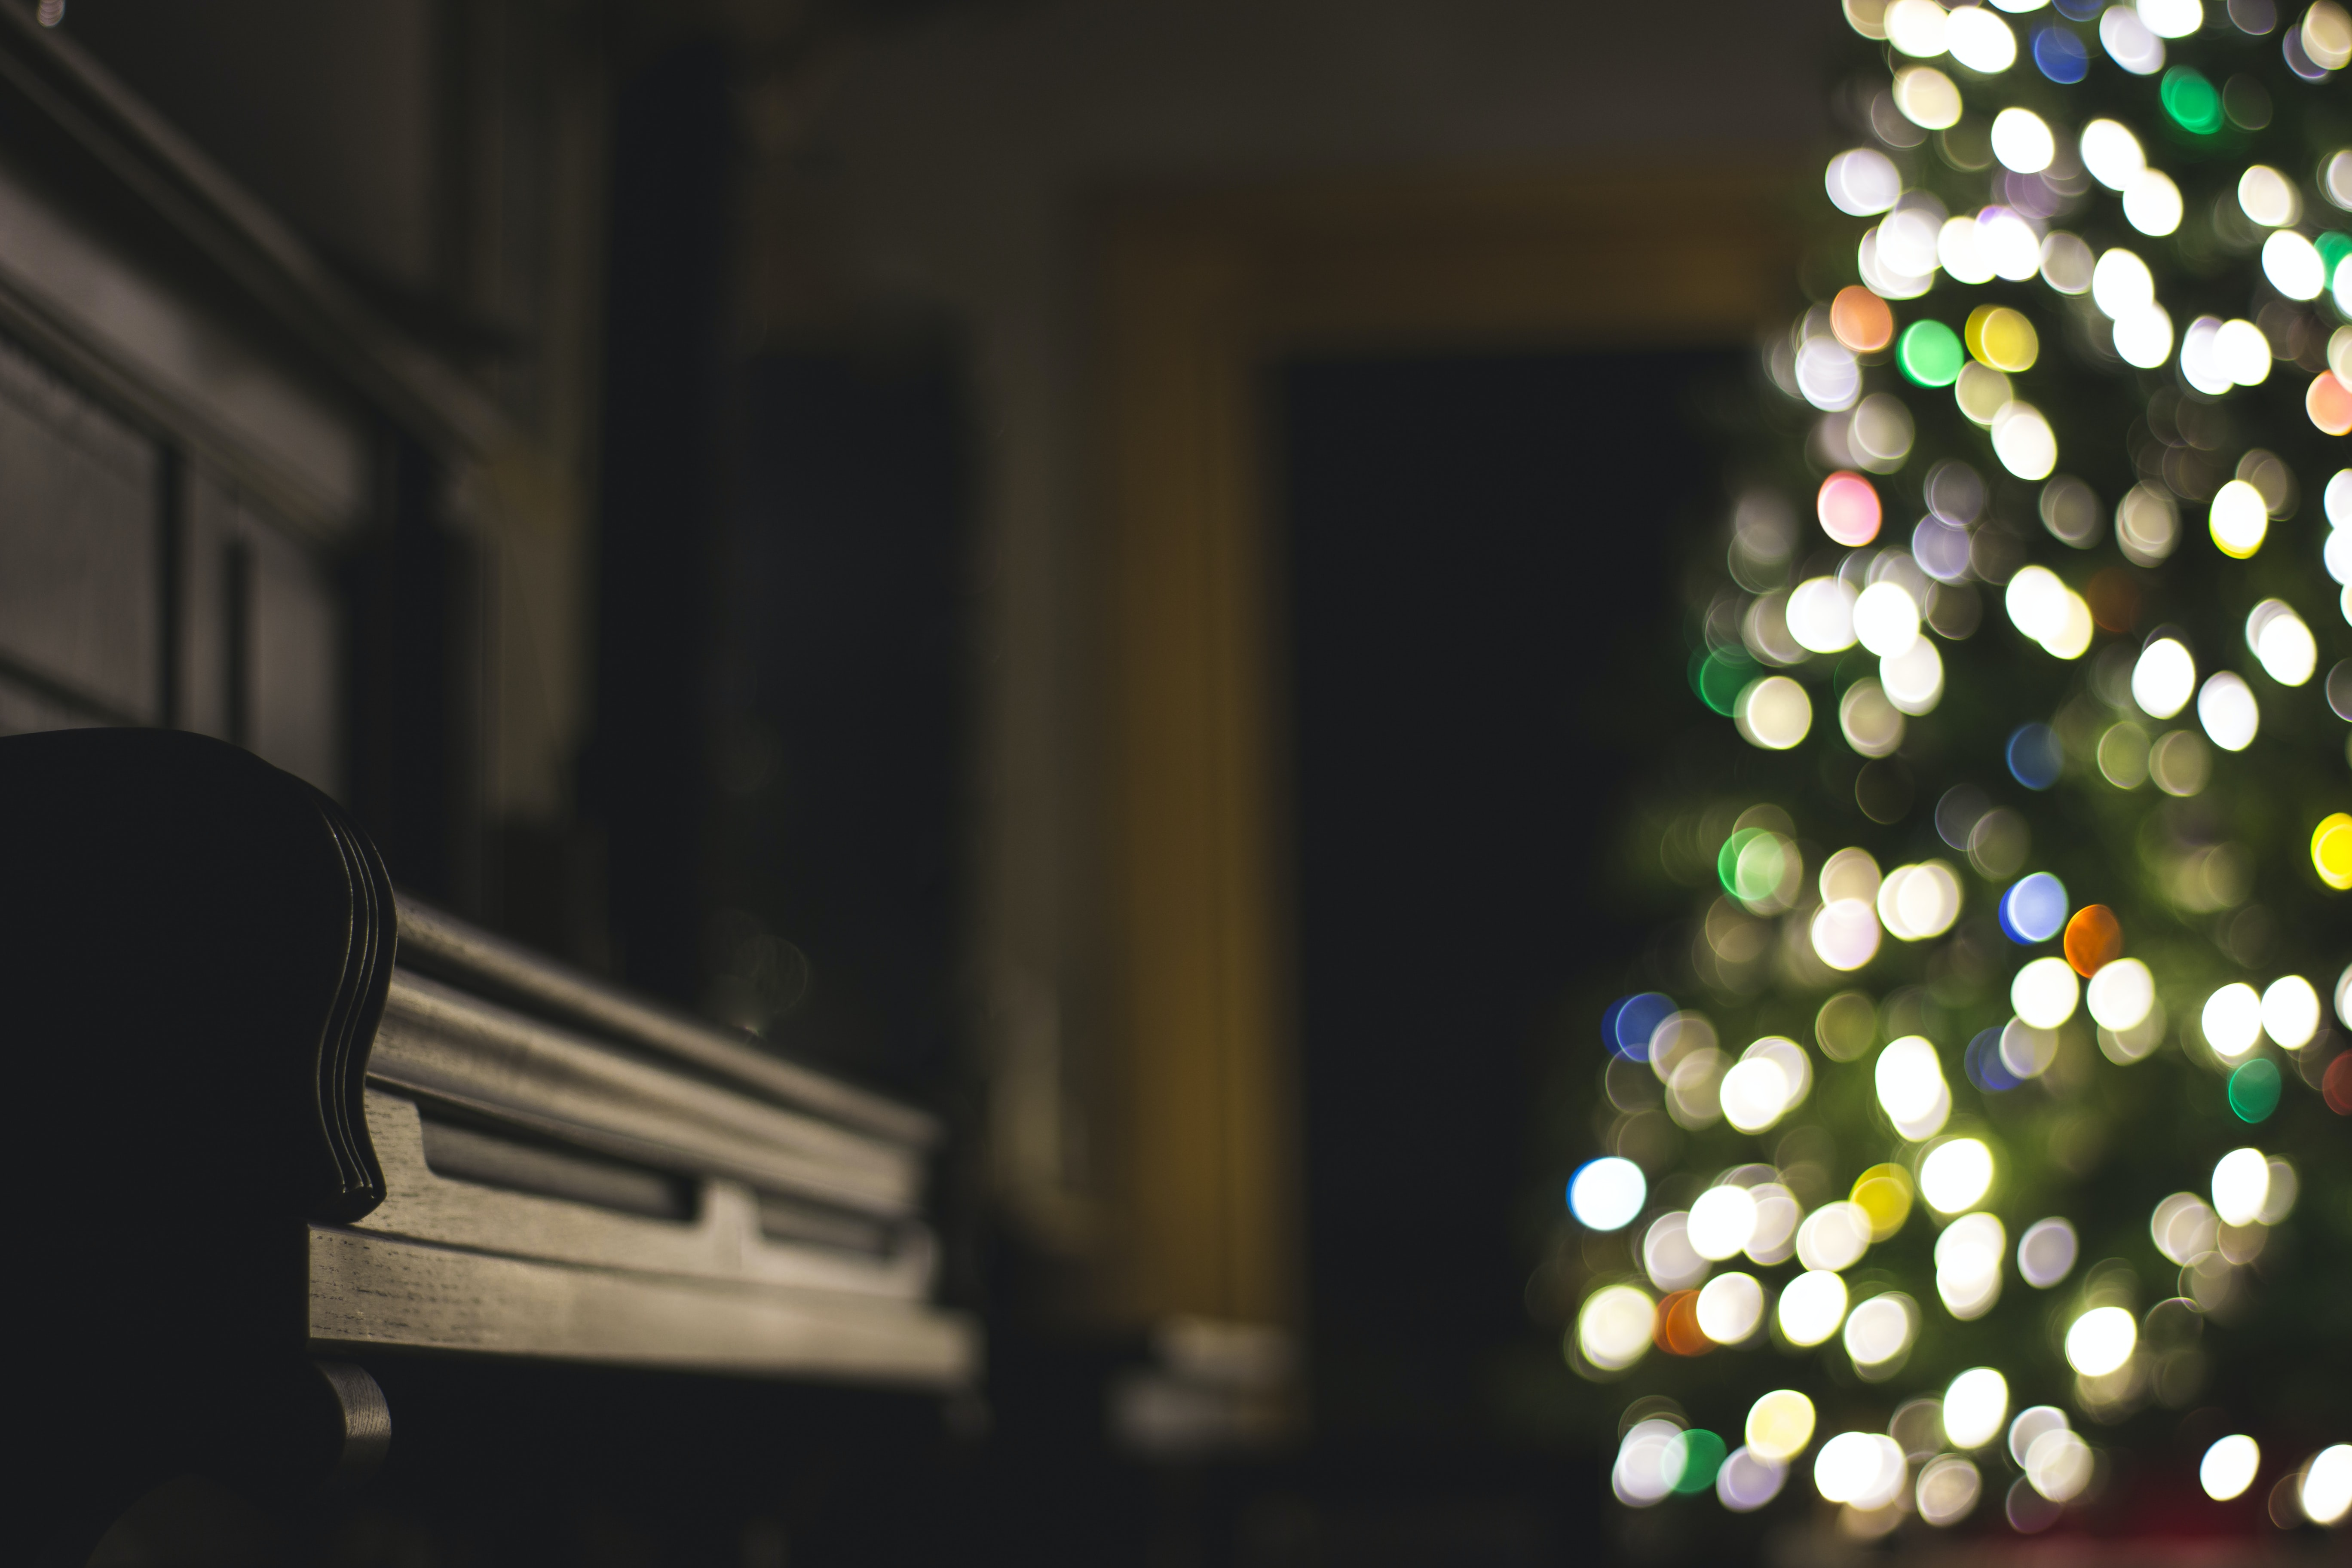 A dim shot of a piano next to a Christmas tree with bokeh effect